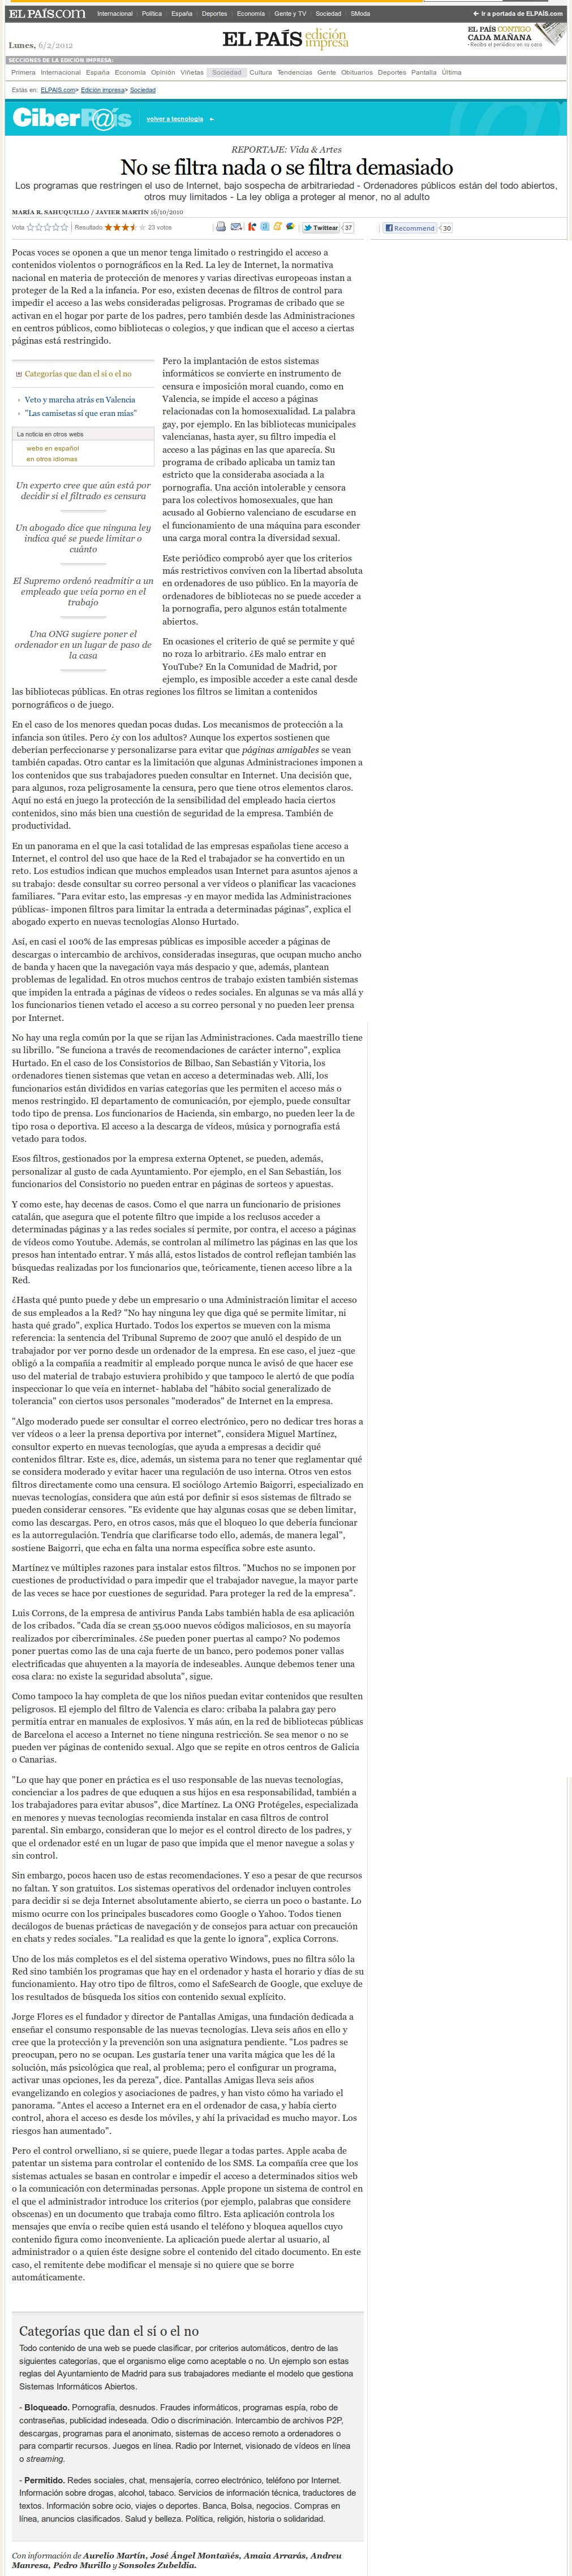 20101016-elpais-com-capturado20120206